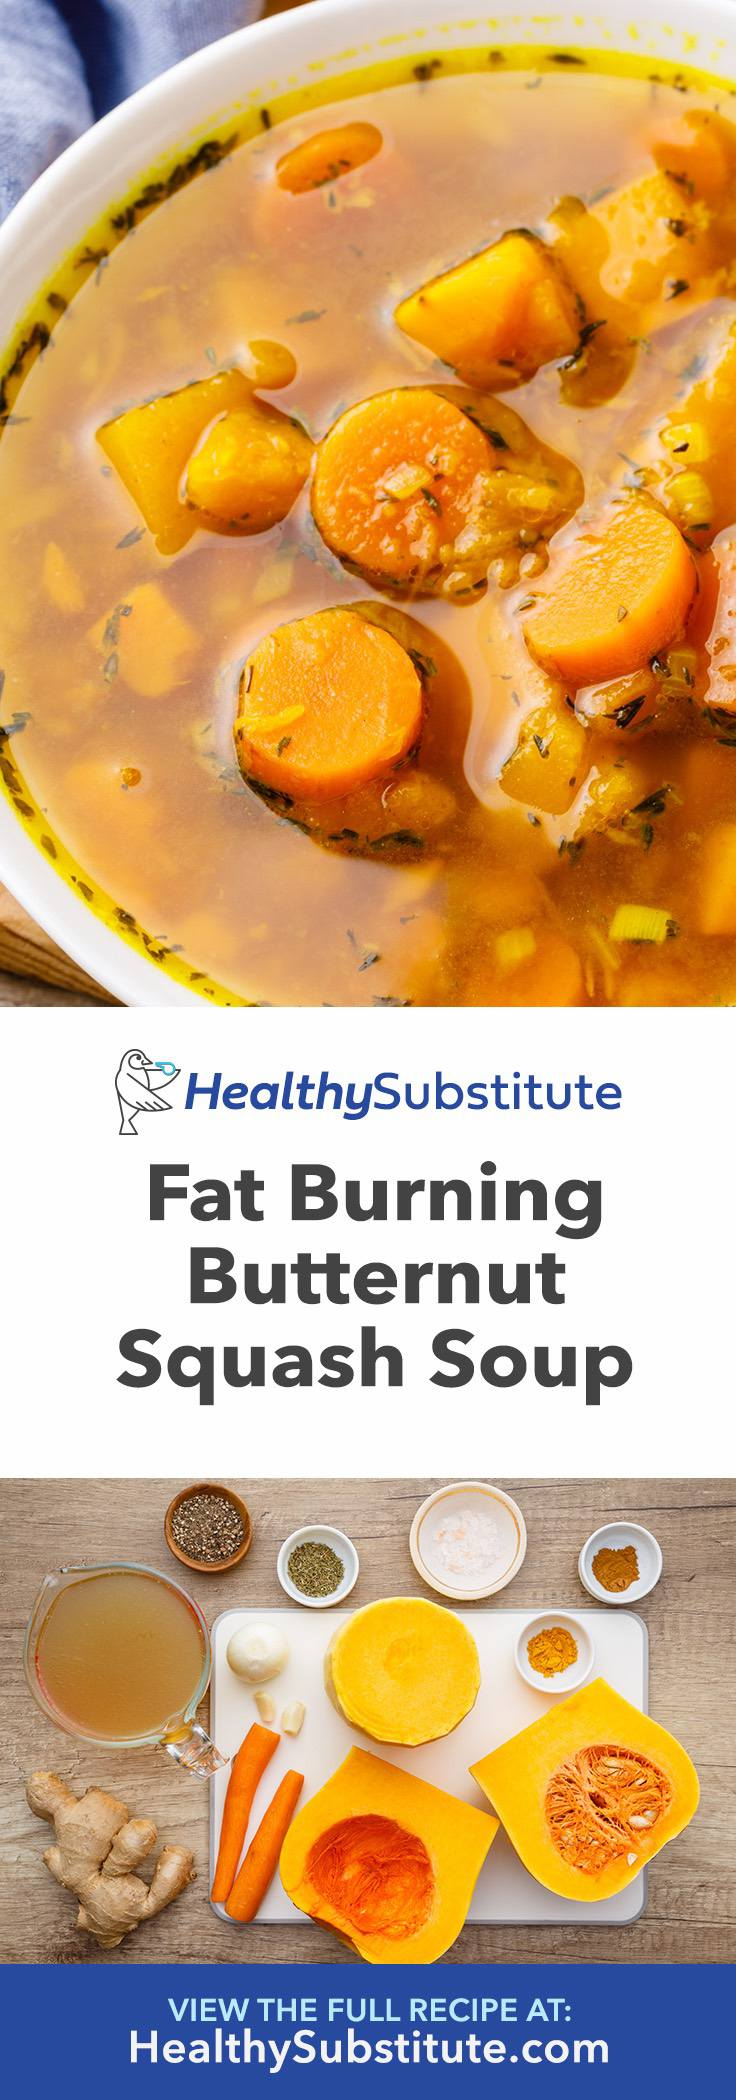 How to Cook Fat Burning Butternut Squash Soup